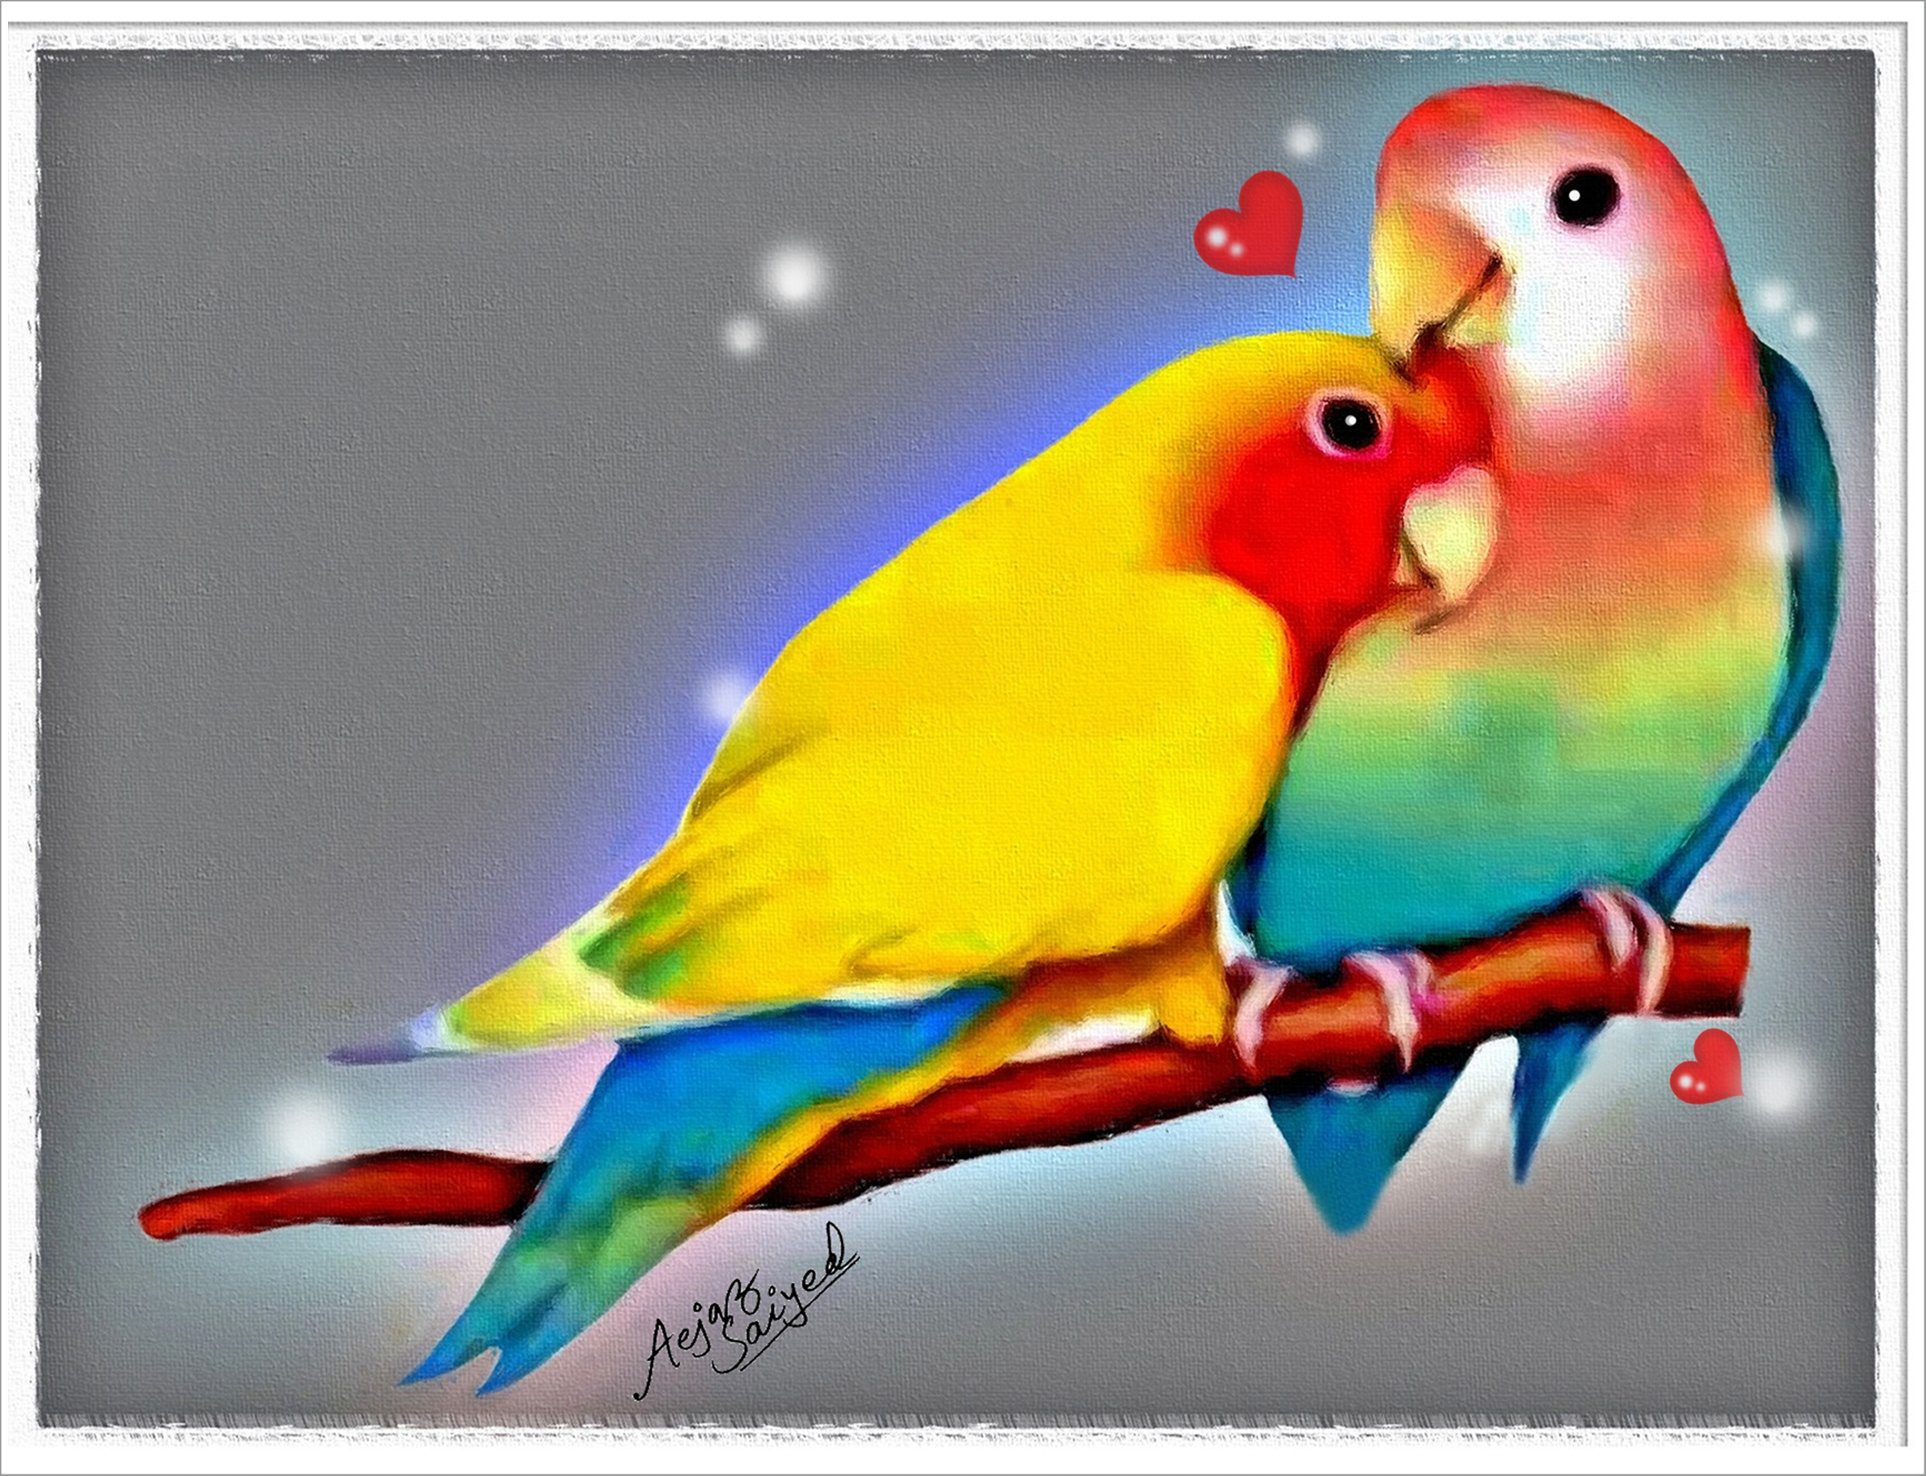 Free Download Pics Photos Love Birds Wallpaper For Computer Background 1926x1476 For Your Desktop Mobile Tablet Explore 72 Love Birds Wallpapers Free Wallpapers And Screensavers Birds Free Love Screensavers